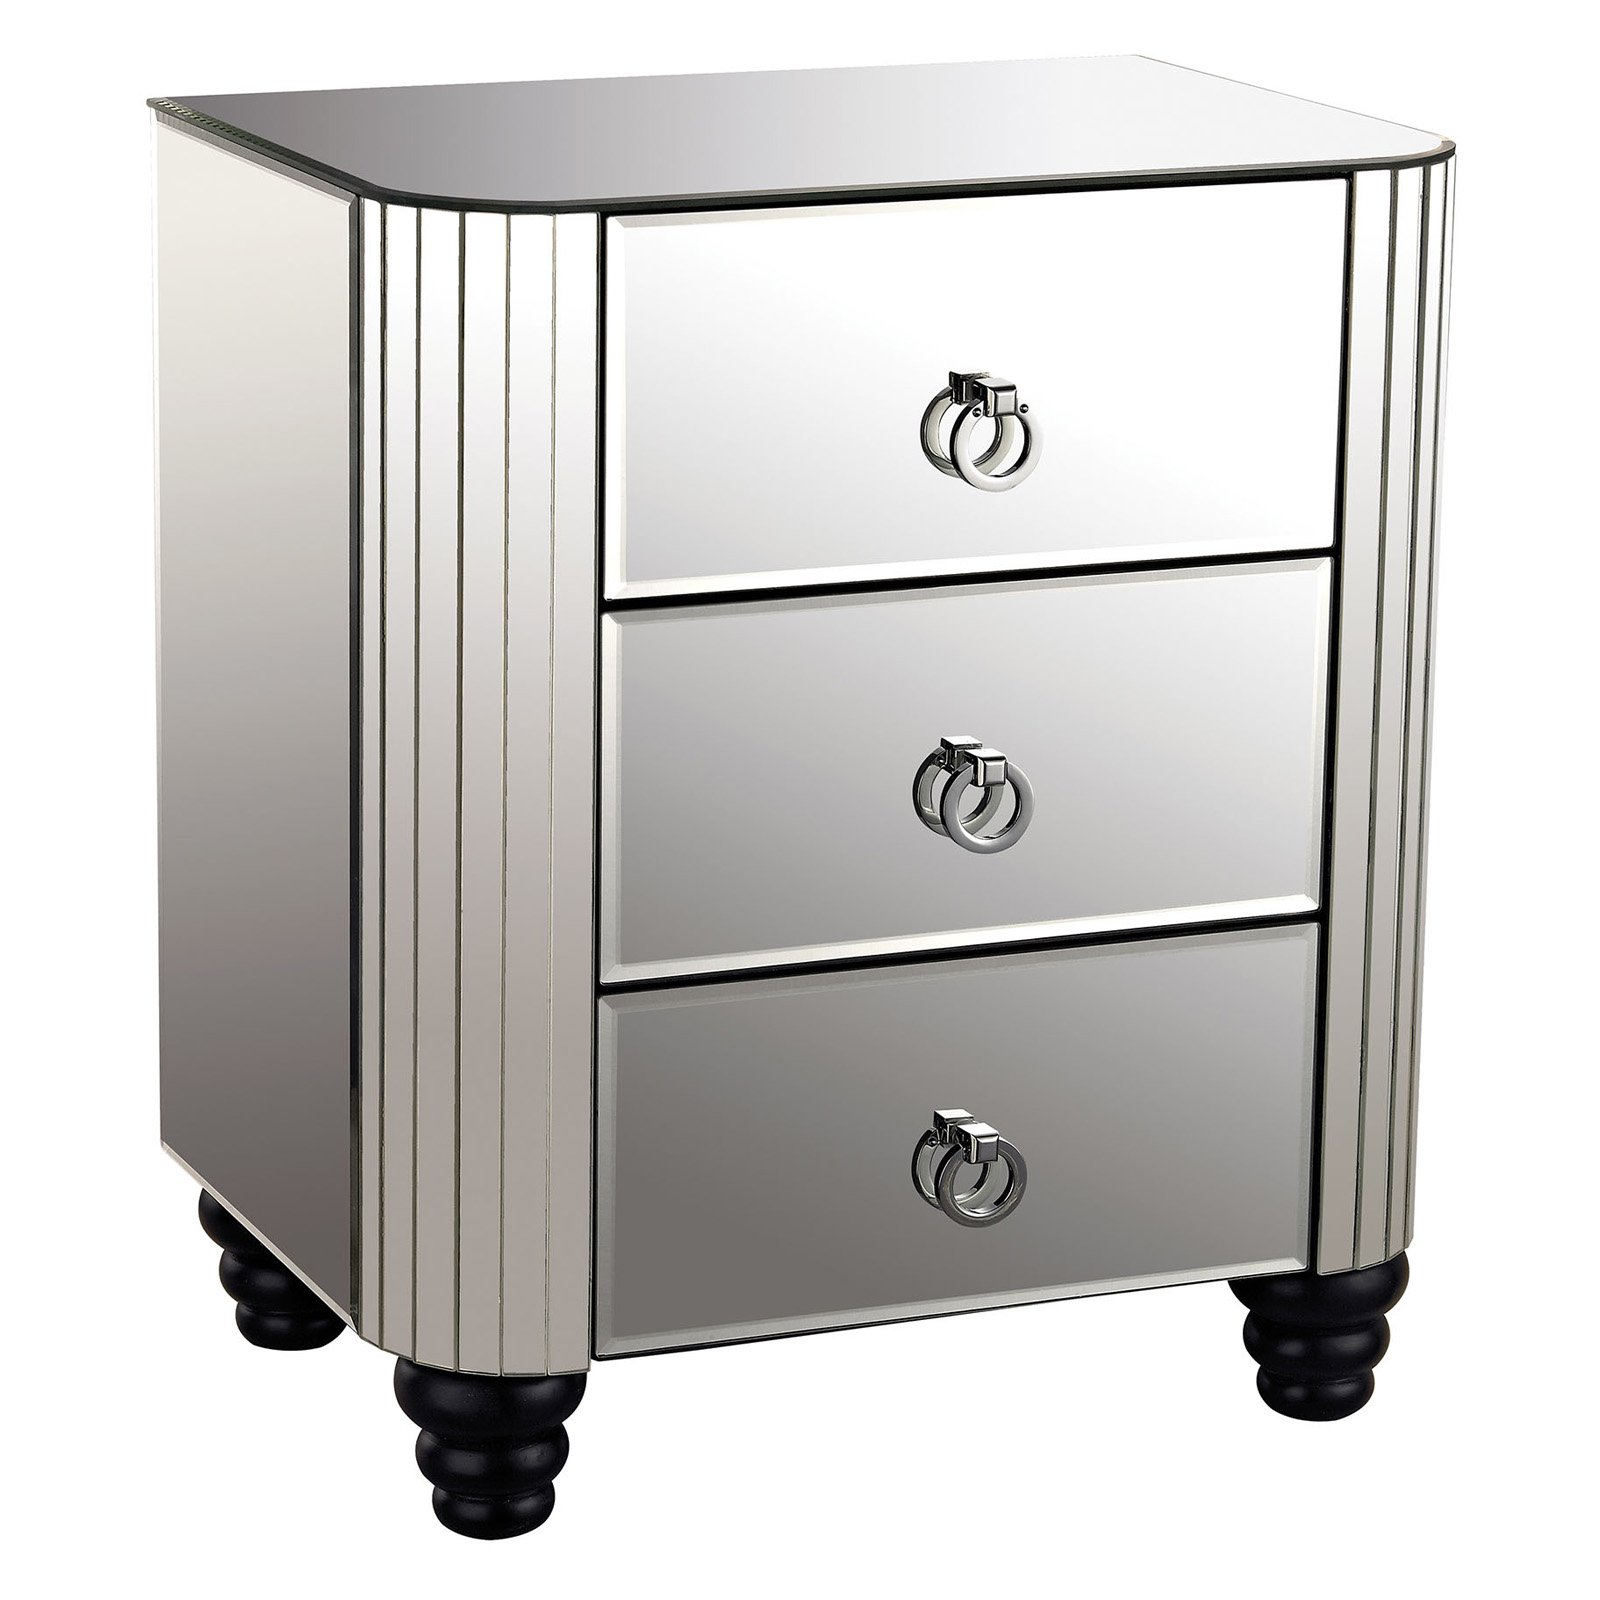 Dimond Home Deco 3 Drawer Decorative Chest by Dimond Home